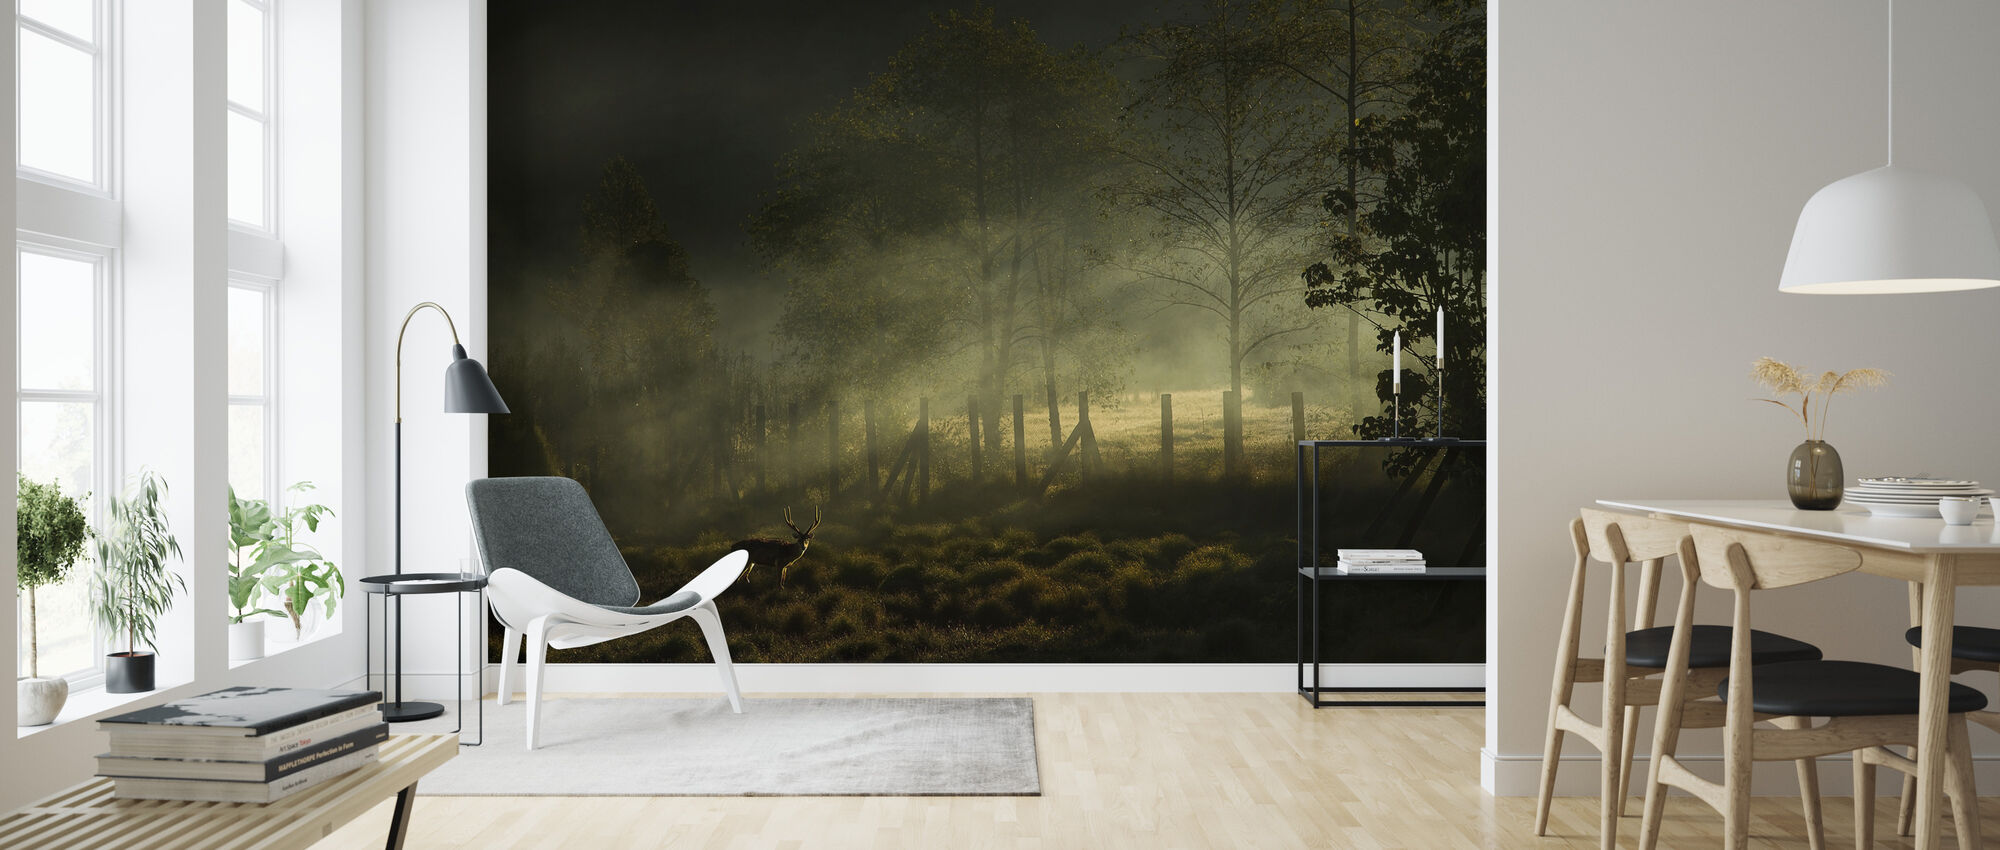 Misty Morning - Wallpaper - Living Room